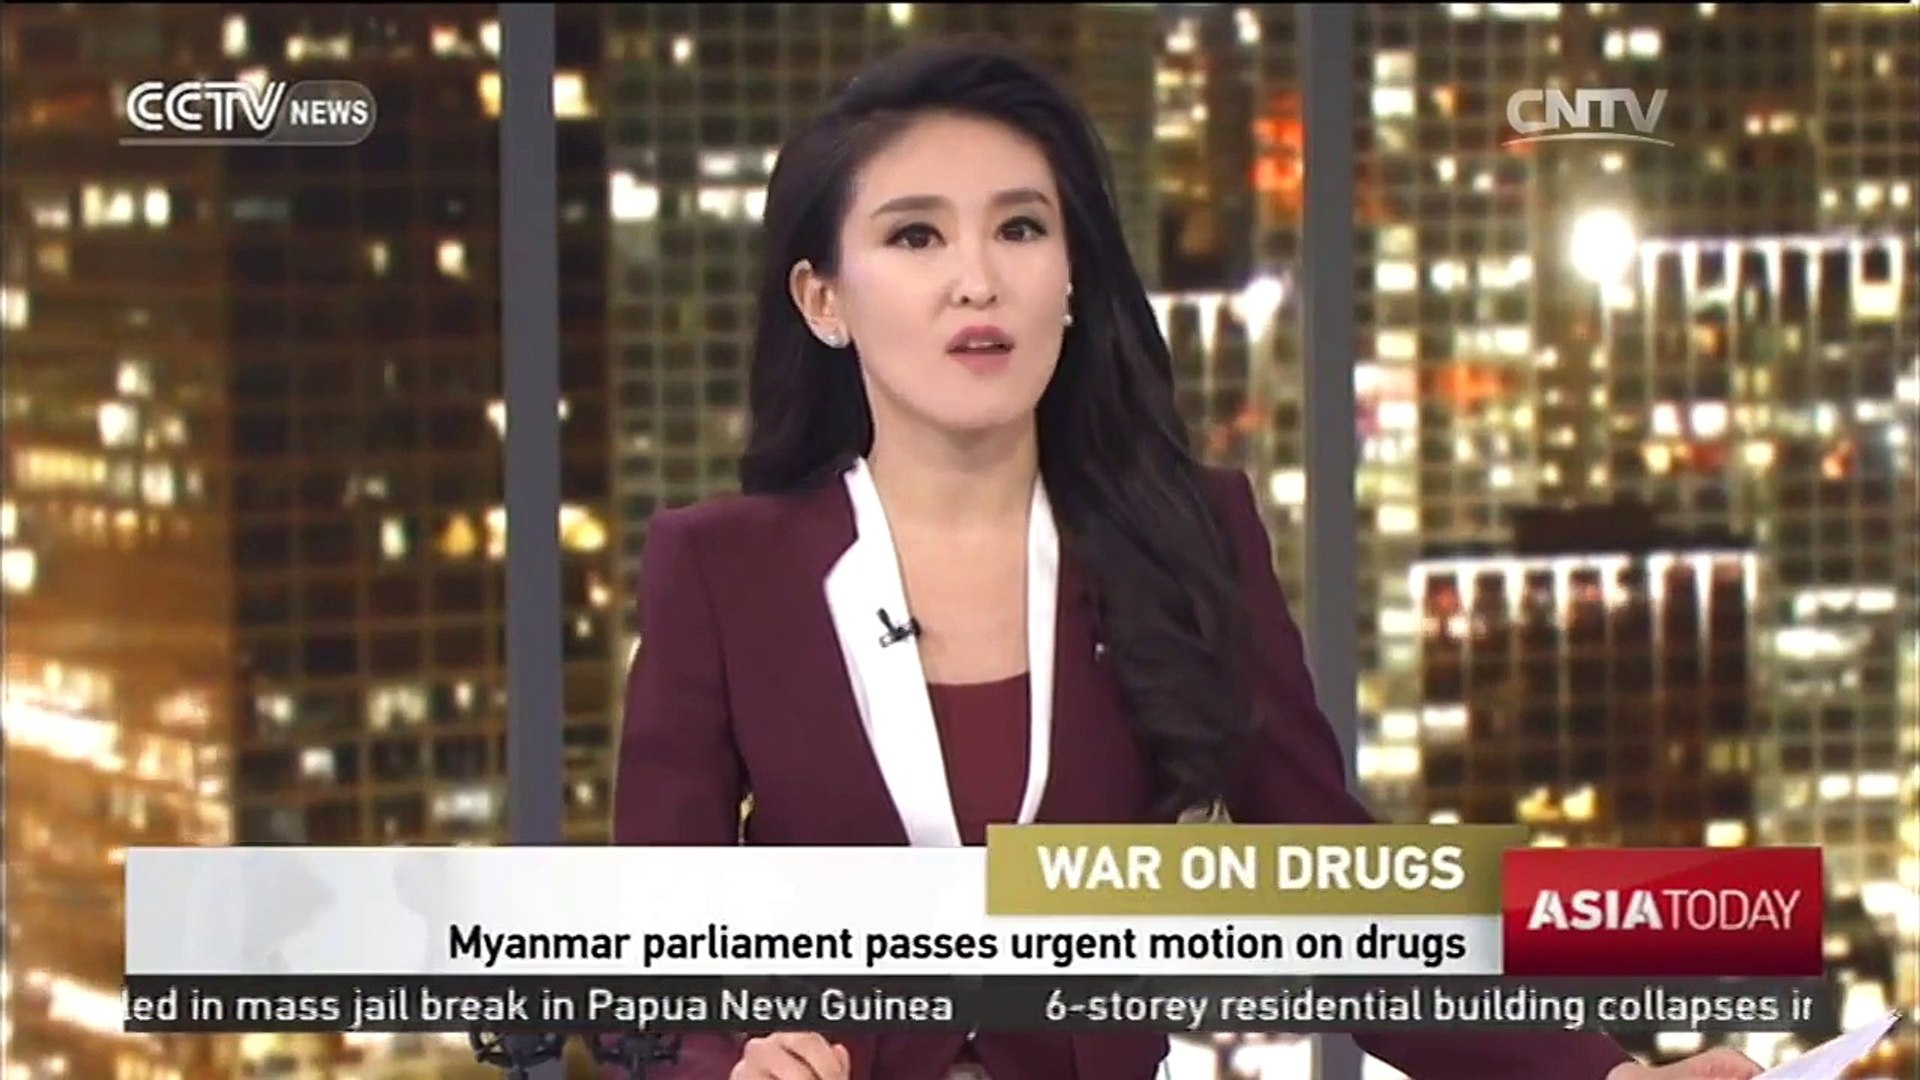 War On Drugs: Myanmar parliament passes urgent motion on drugs